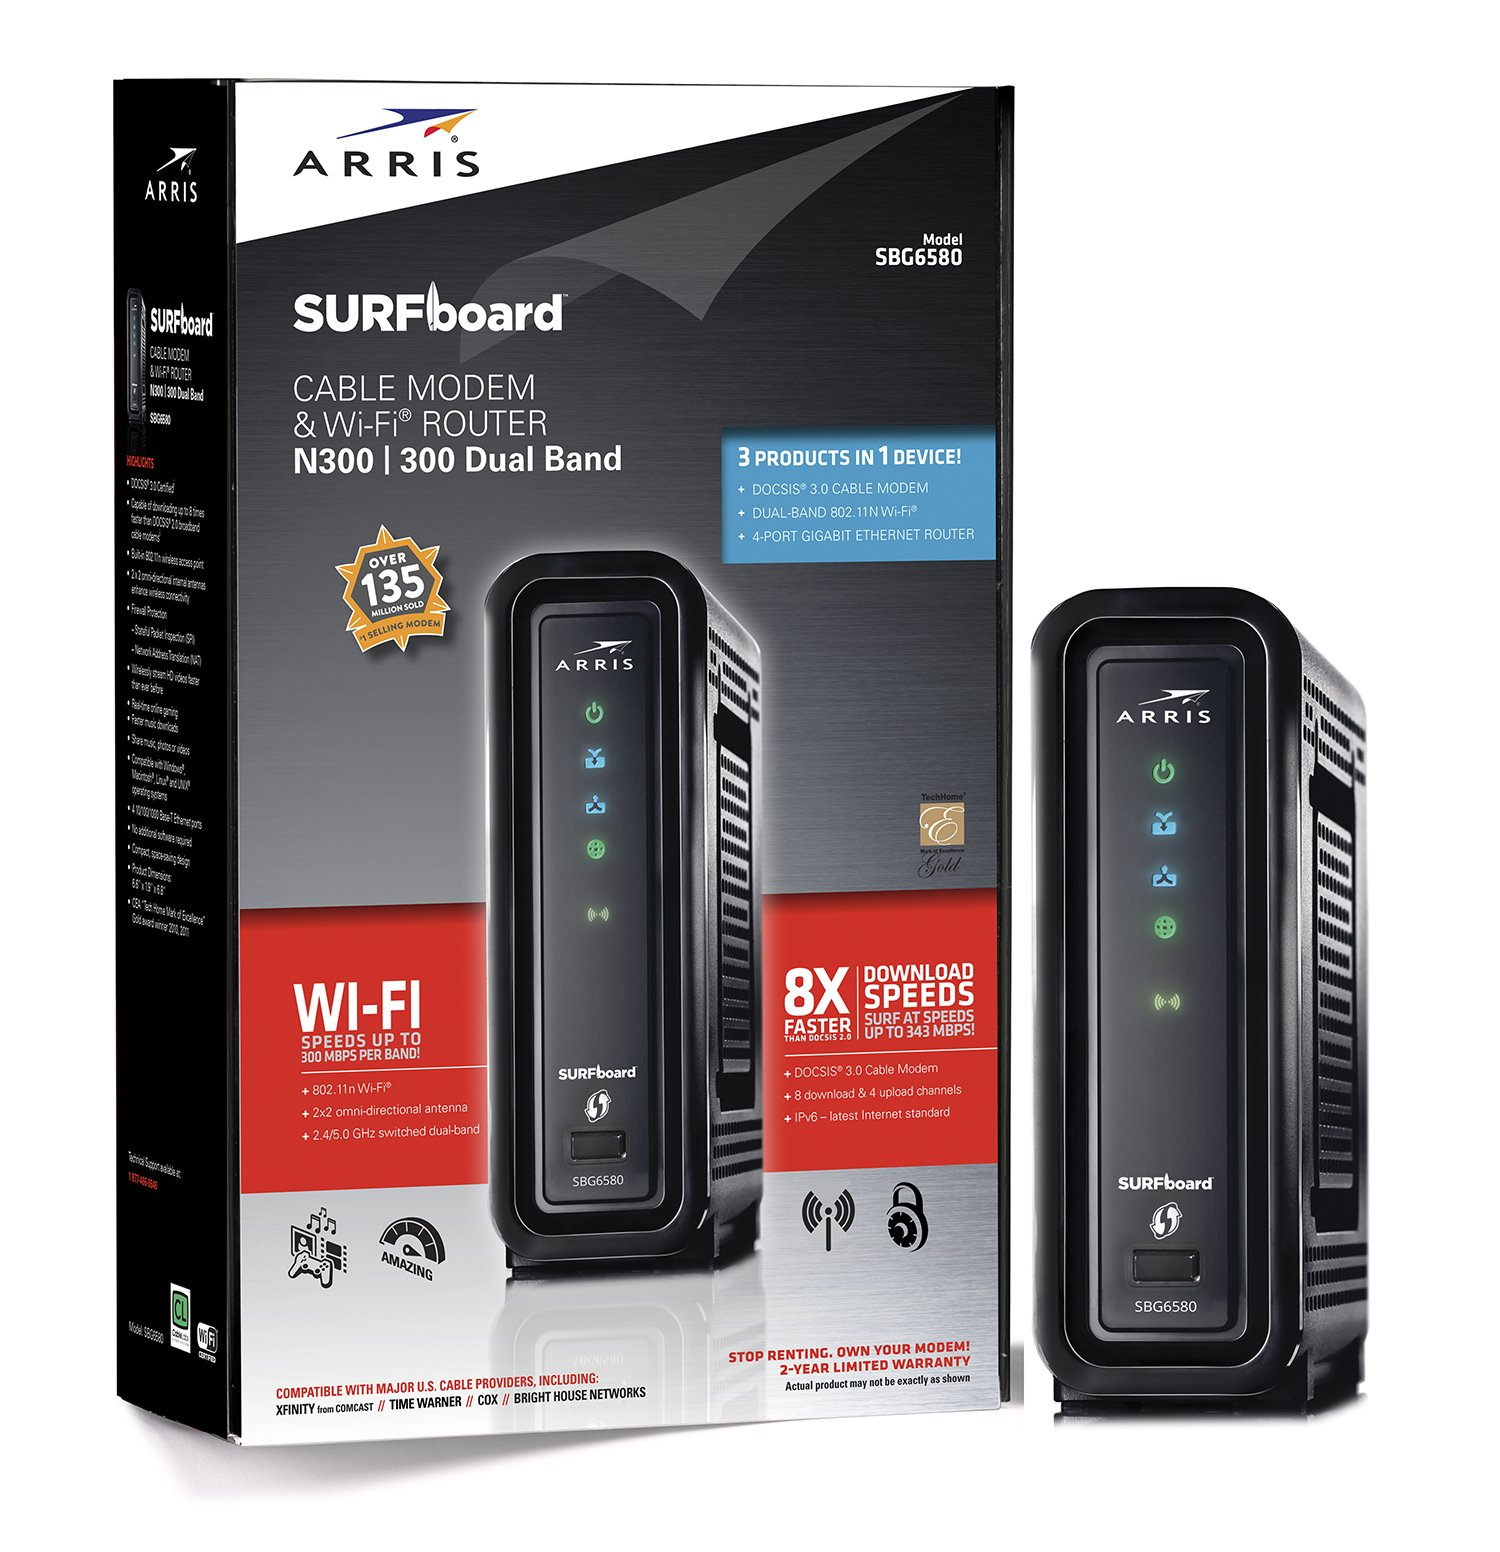 ARRIS SURFboard SBG6580-2 8x4 DOCSIS 3.0 Cable Modem/Wi-Fi N600 (N300 2.4Ghz + N300 5GHz) Dual Band Router - Retail Packaging Black (570763-034-00)